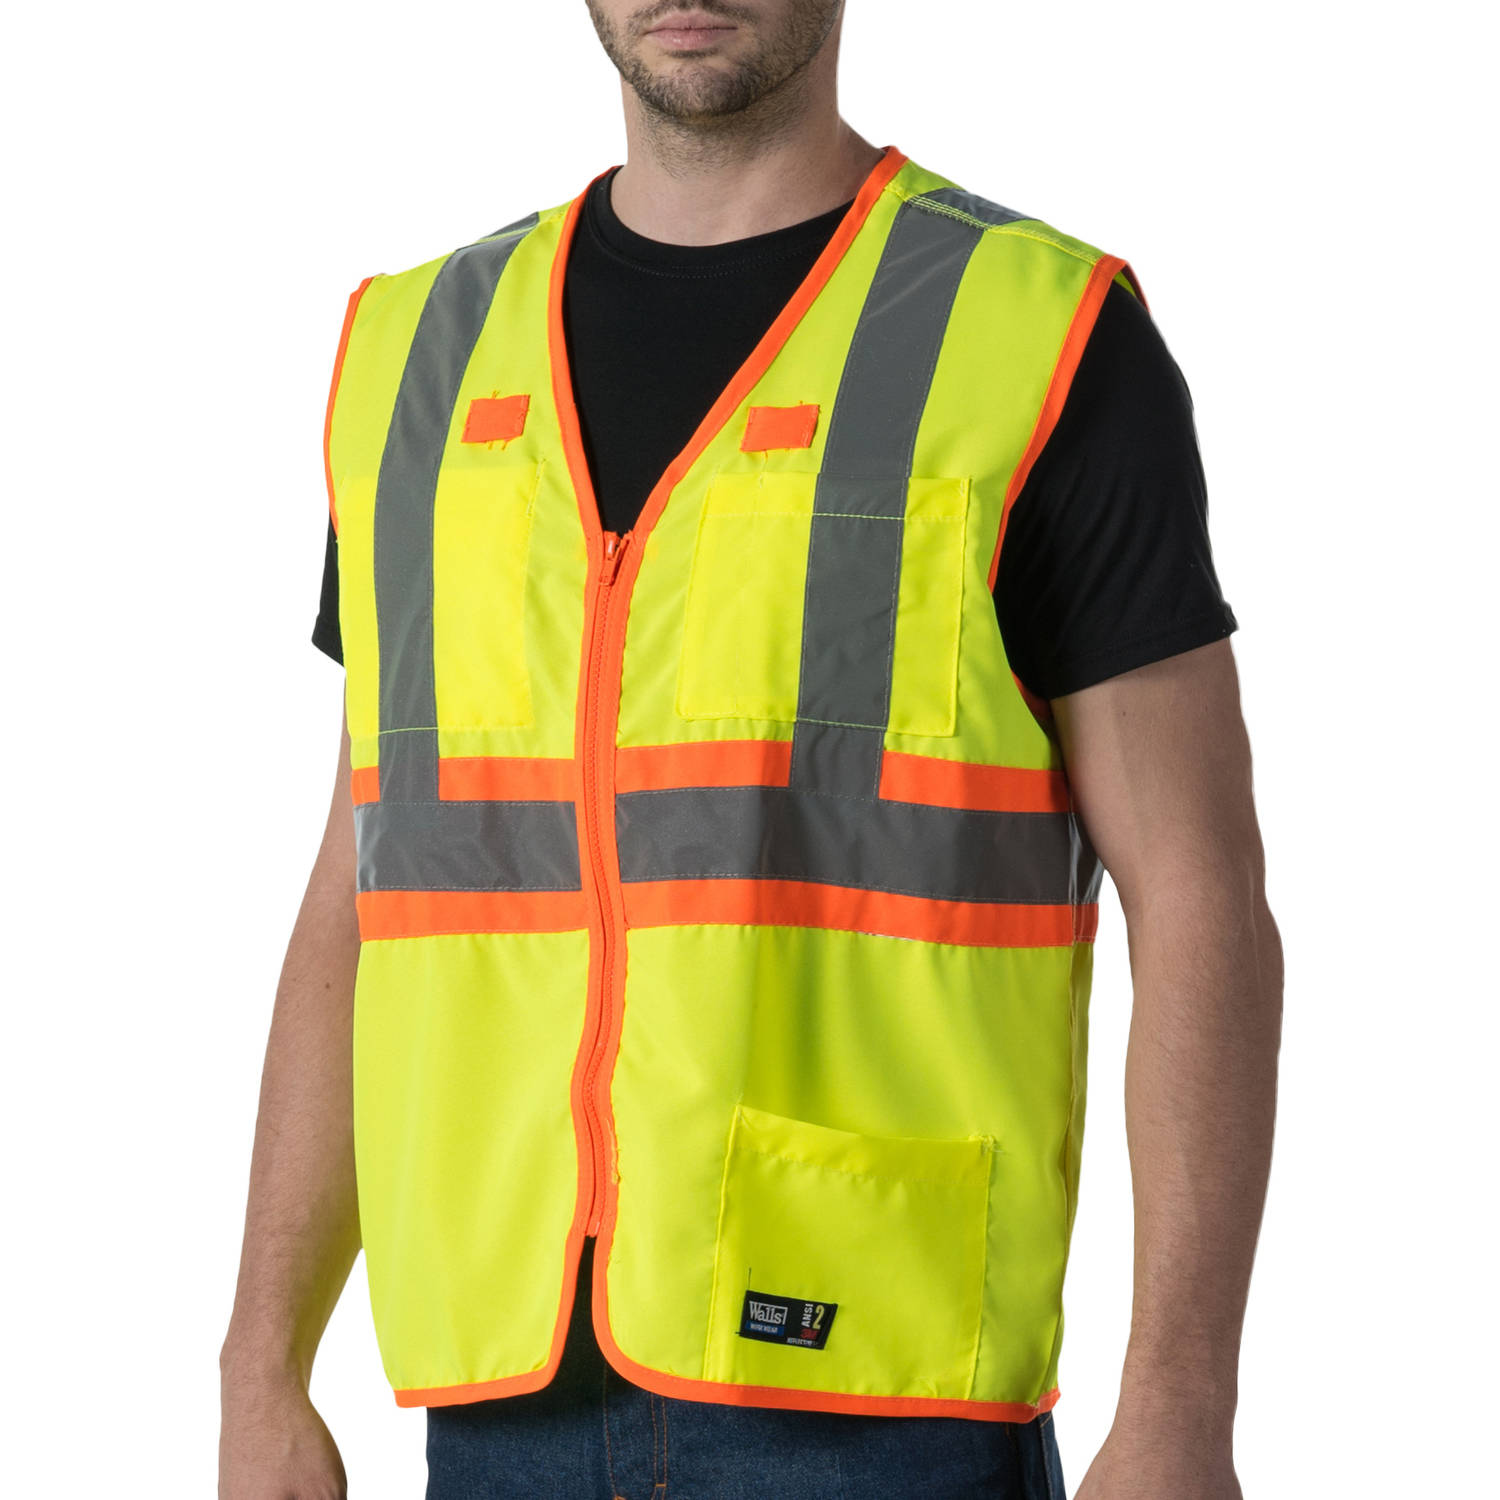 Big Men's Full ANSI II High Visibility Safety Vest, 2XL